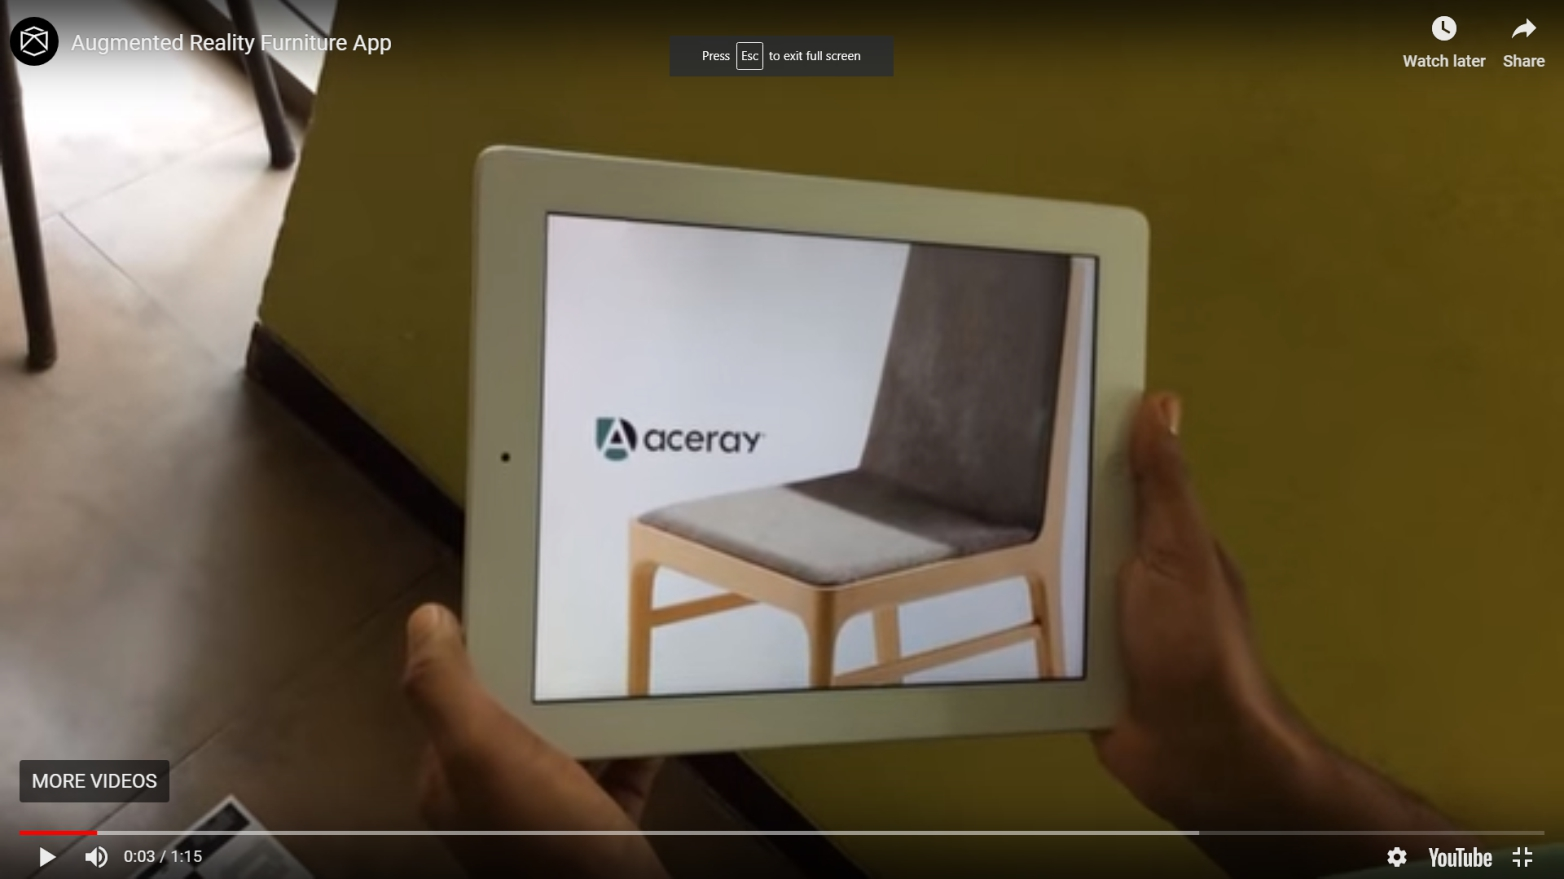 Furniture Augmented Reality - Reality Premedia